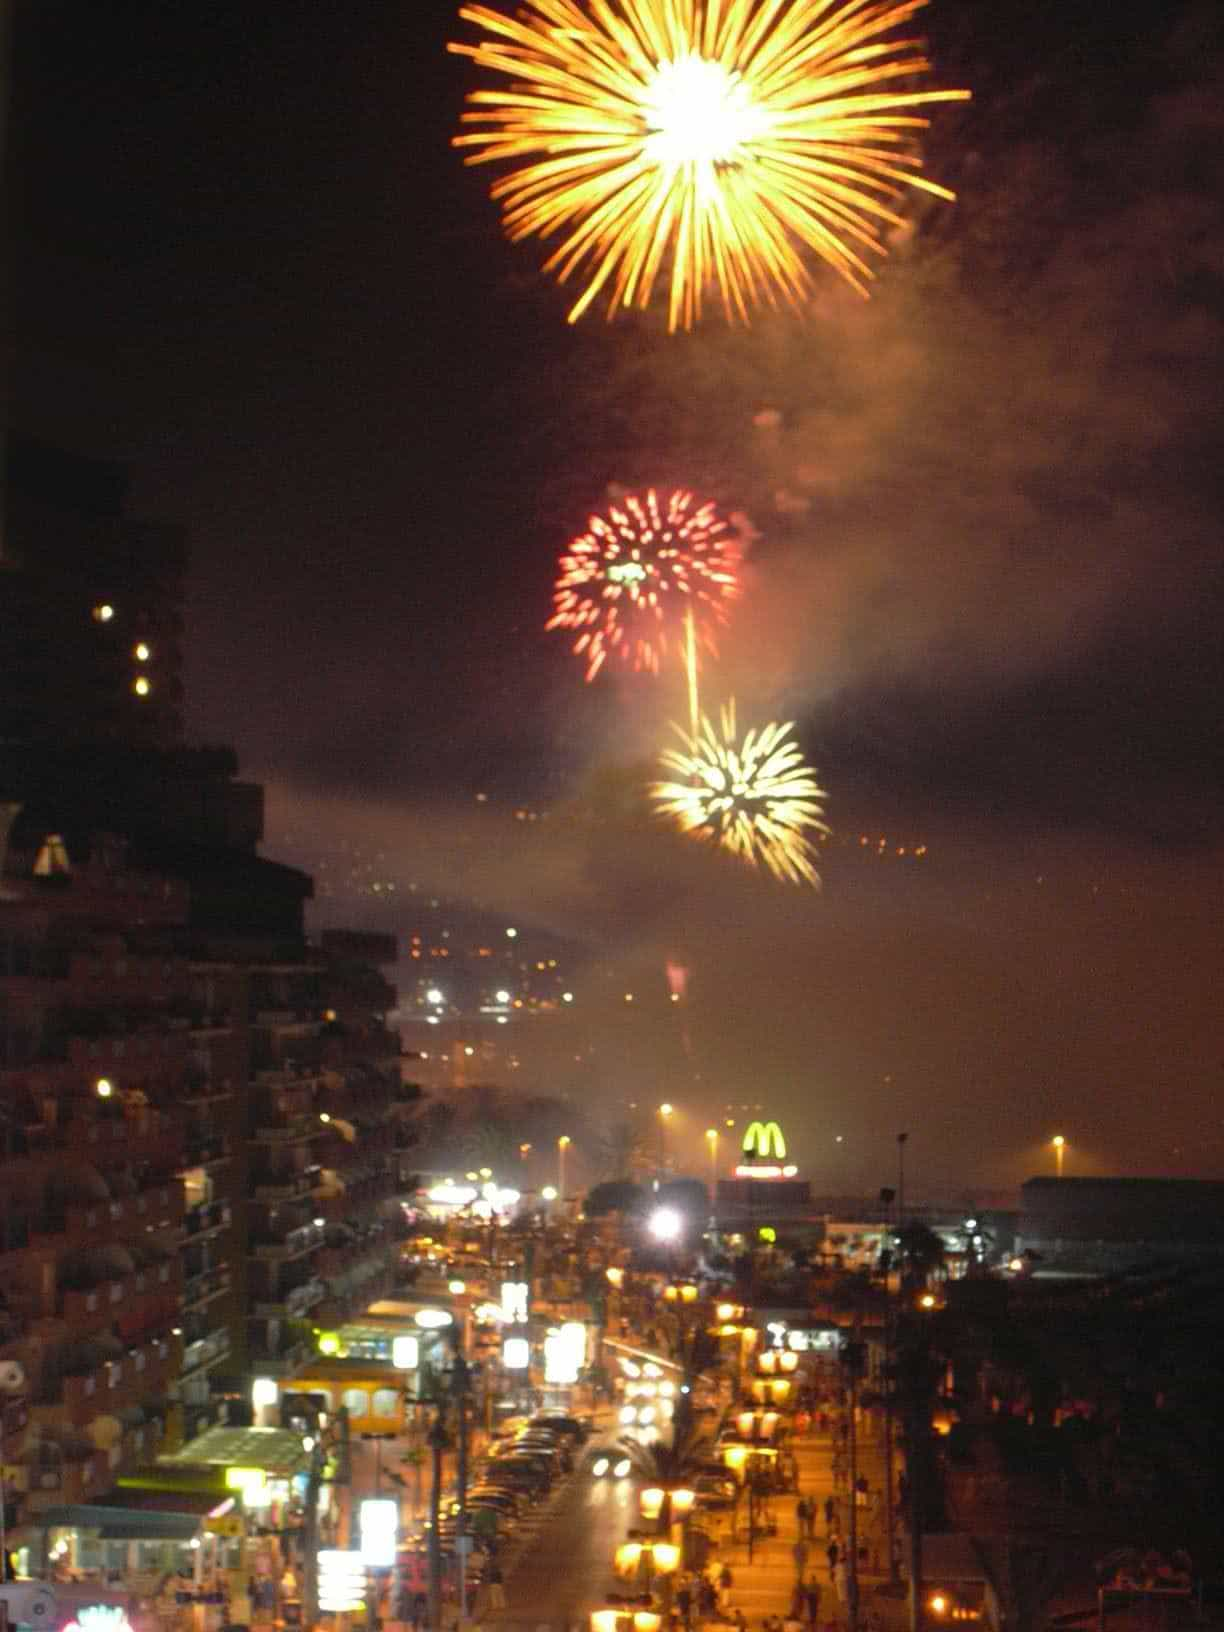 Fuengirola Fireworks 2 - January 10, 2012